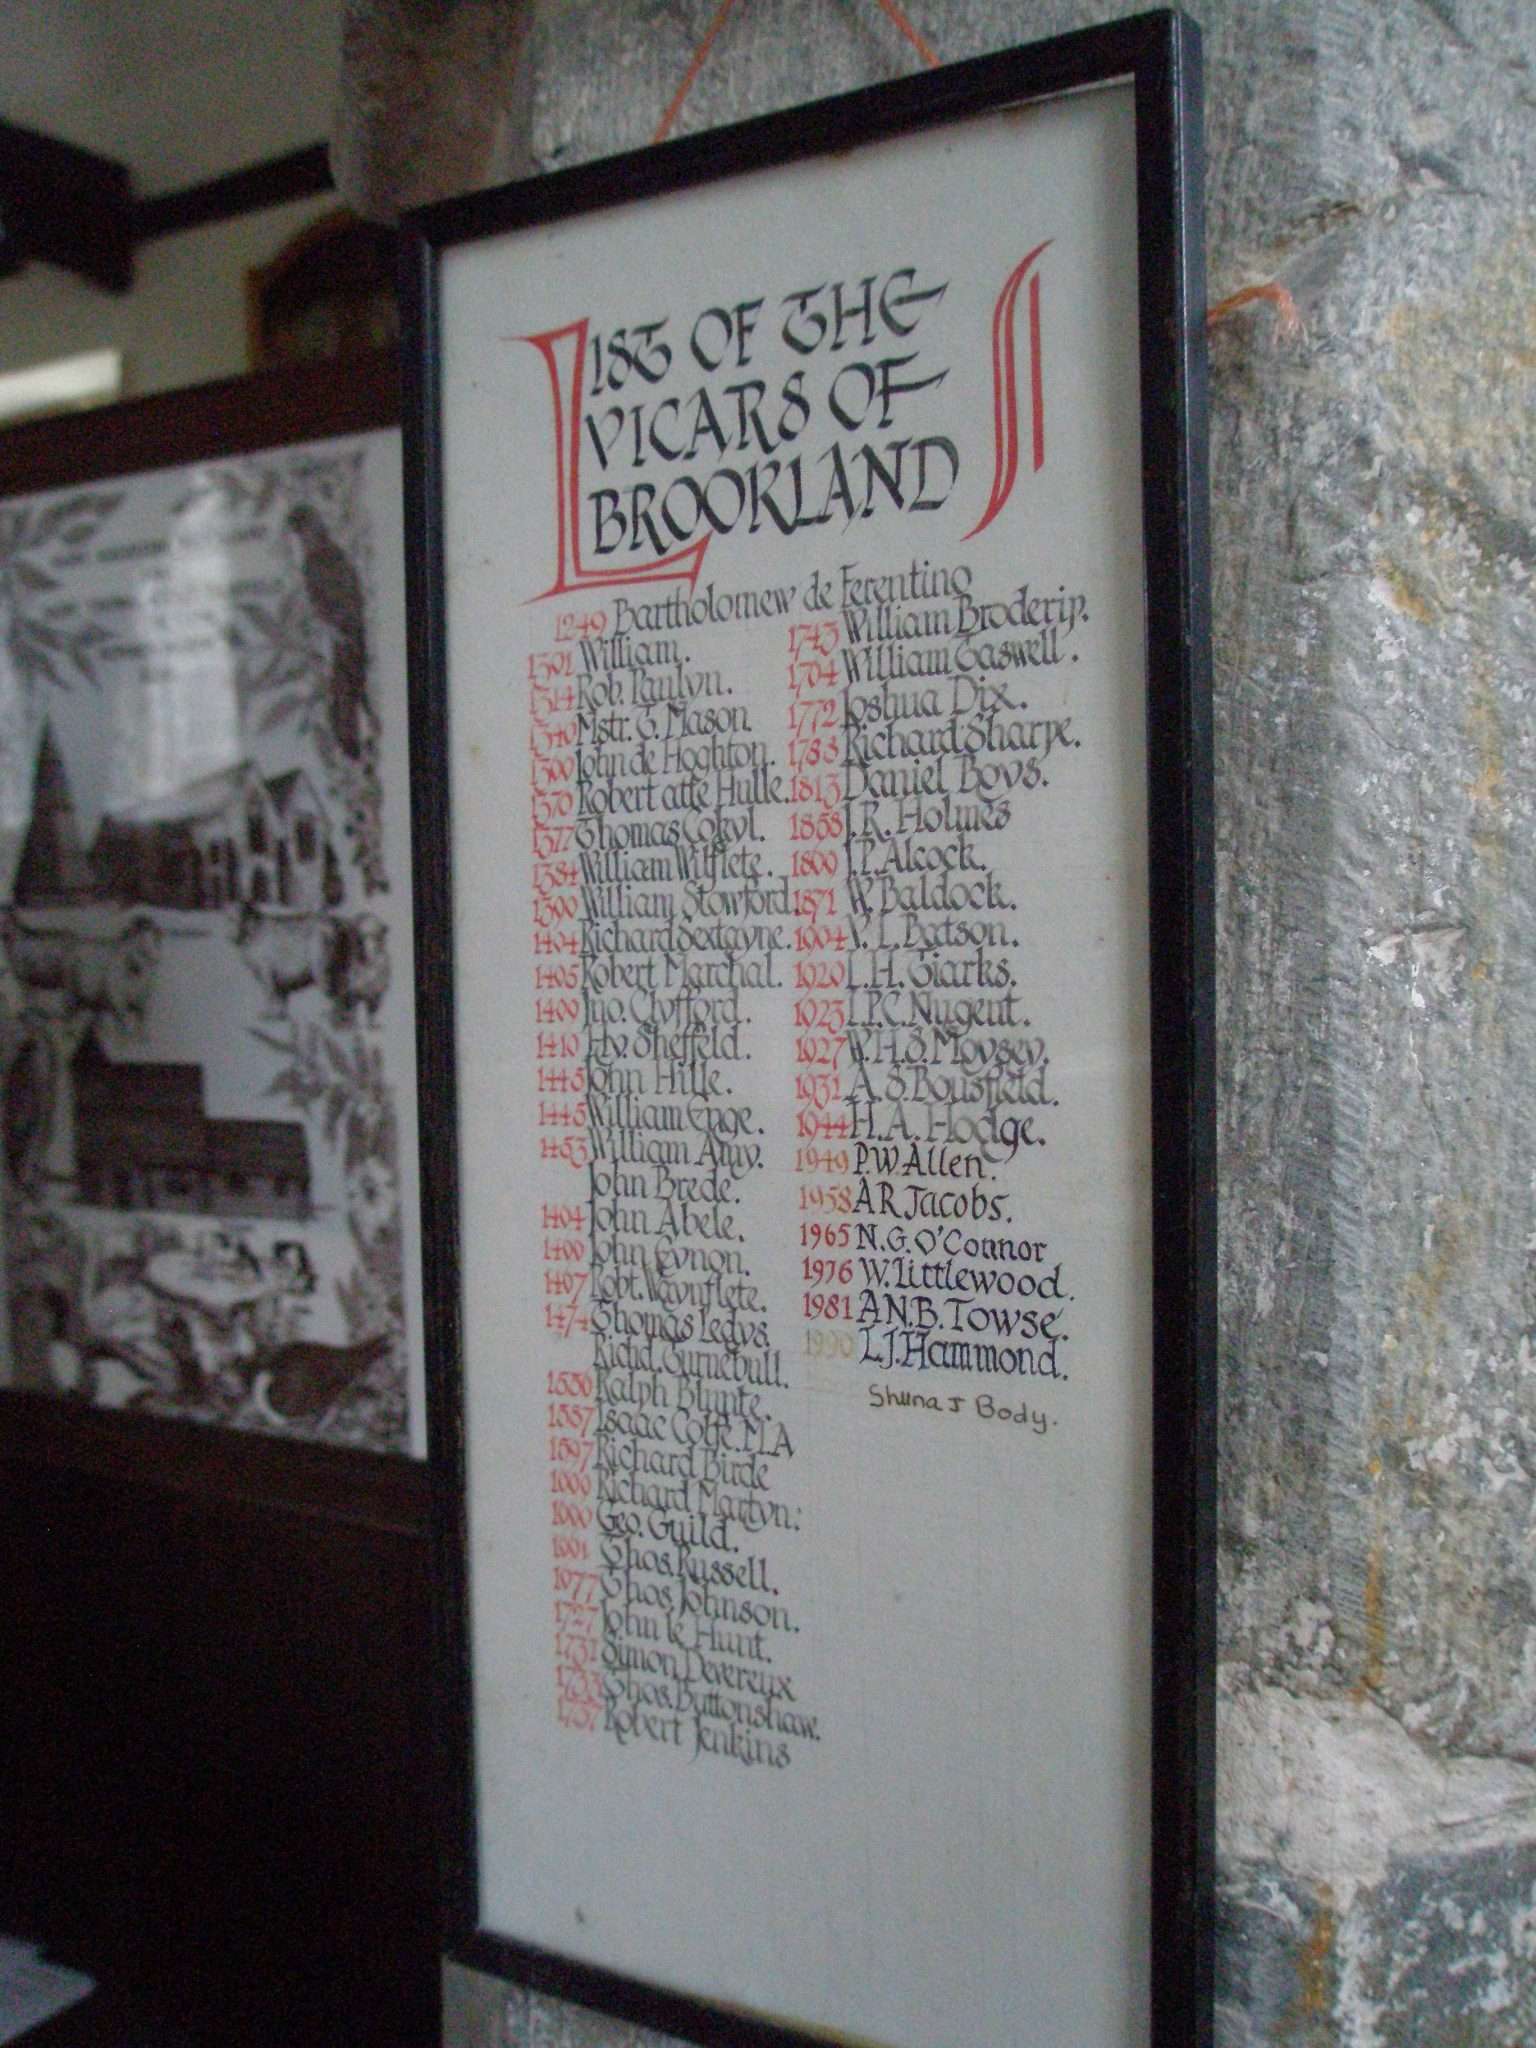 The Church of England has a LONG MEMORY. Here's a list of the Vicars of Brookland, from 1249 to the present.